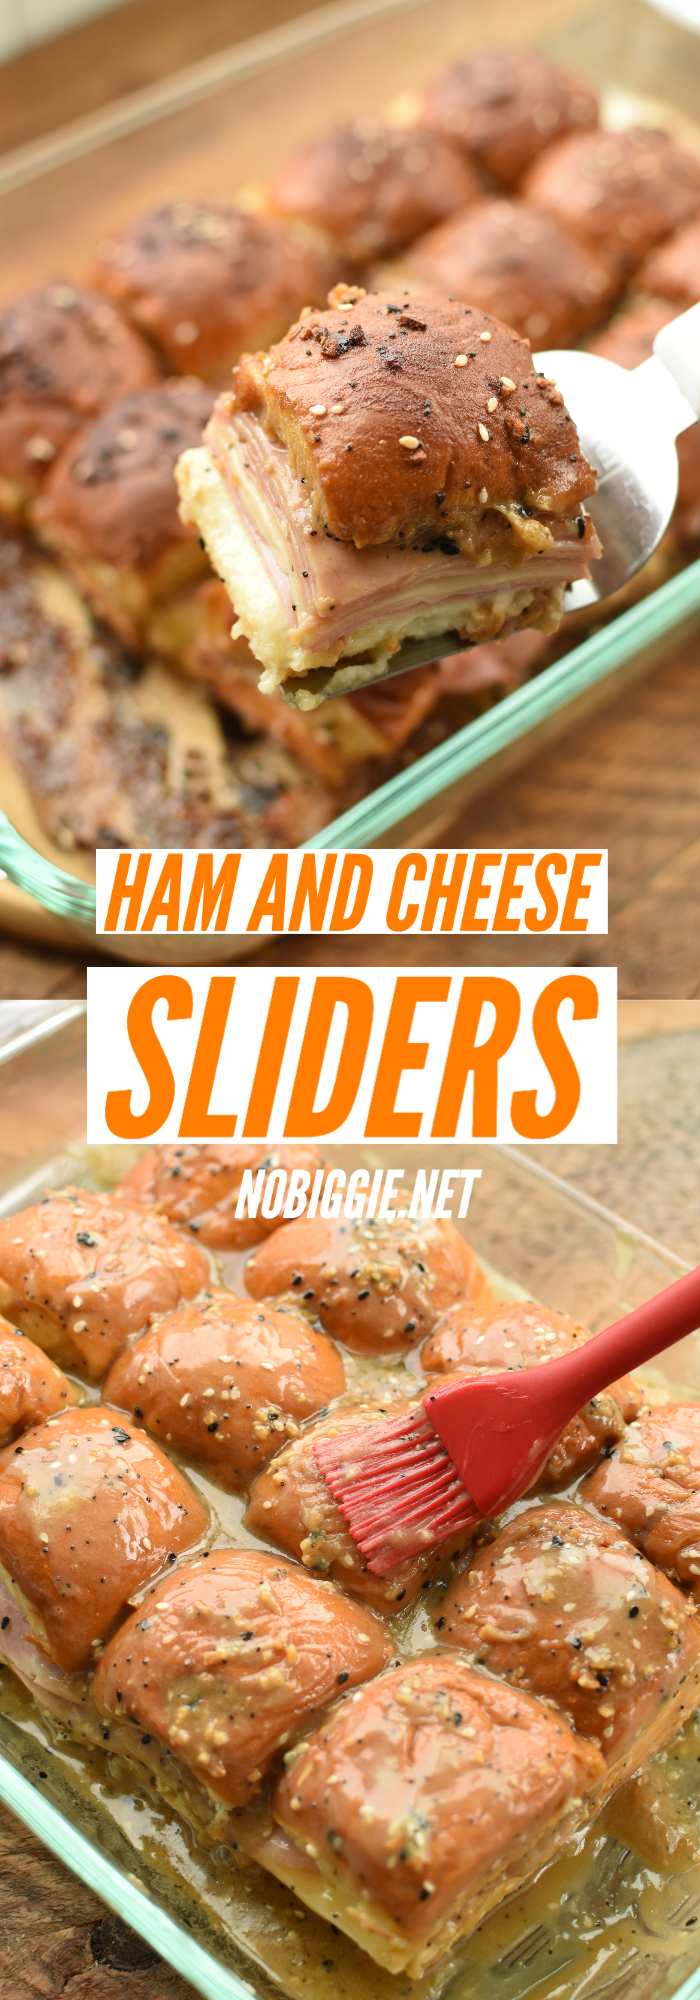 Ham and Cheese Hawaiian Sliders are perfect to feed a crowd and always a #gamedayfood favorite! #sliders #hamandcheesesliders #hawaiiansliders #hamandcheese #hamandcheesehawaiiansliders